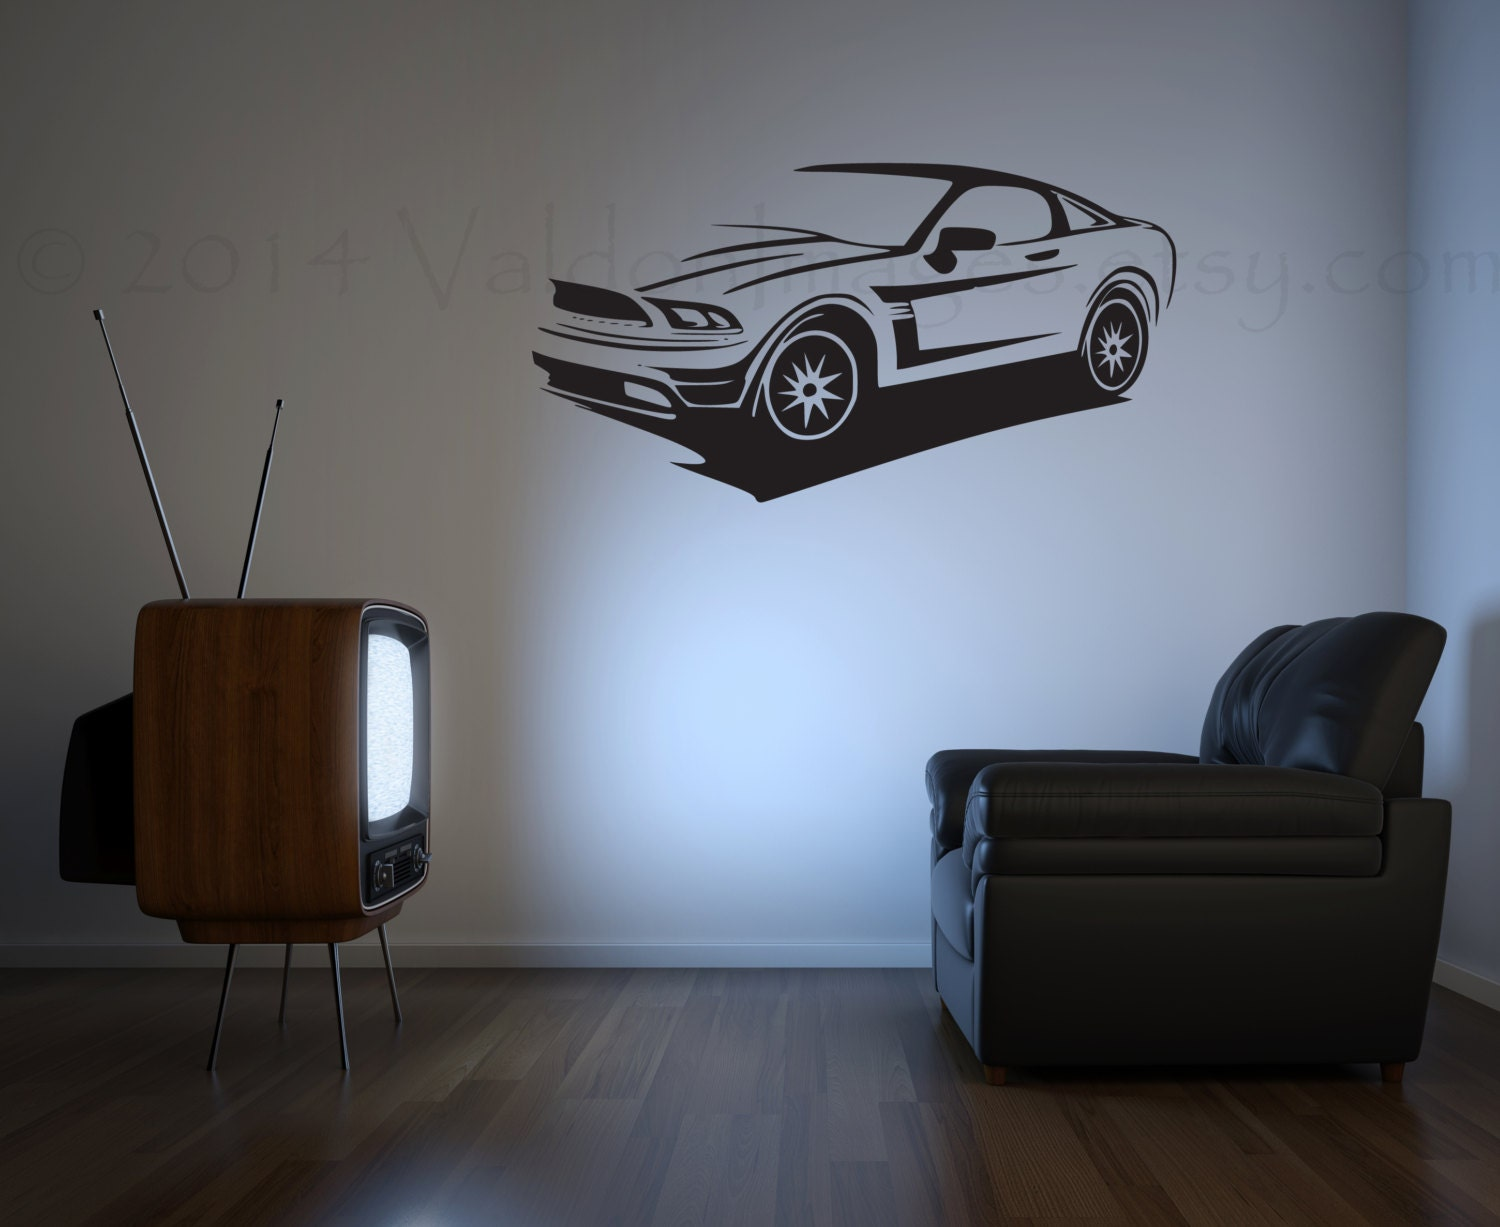 Man Cave Sports Wall Decor : Mustang sports car wall decal man cave decor game room